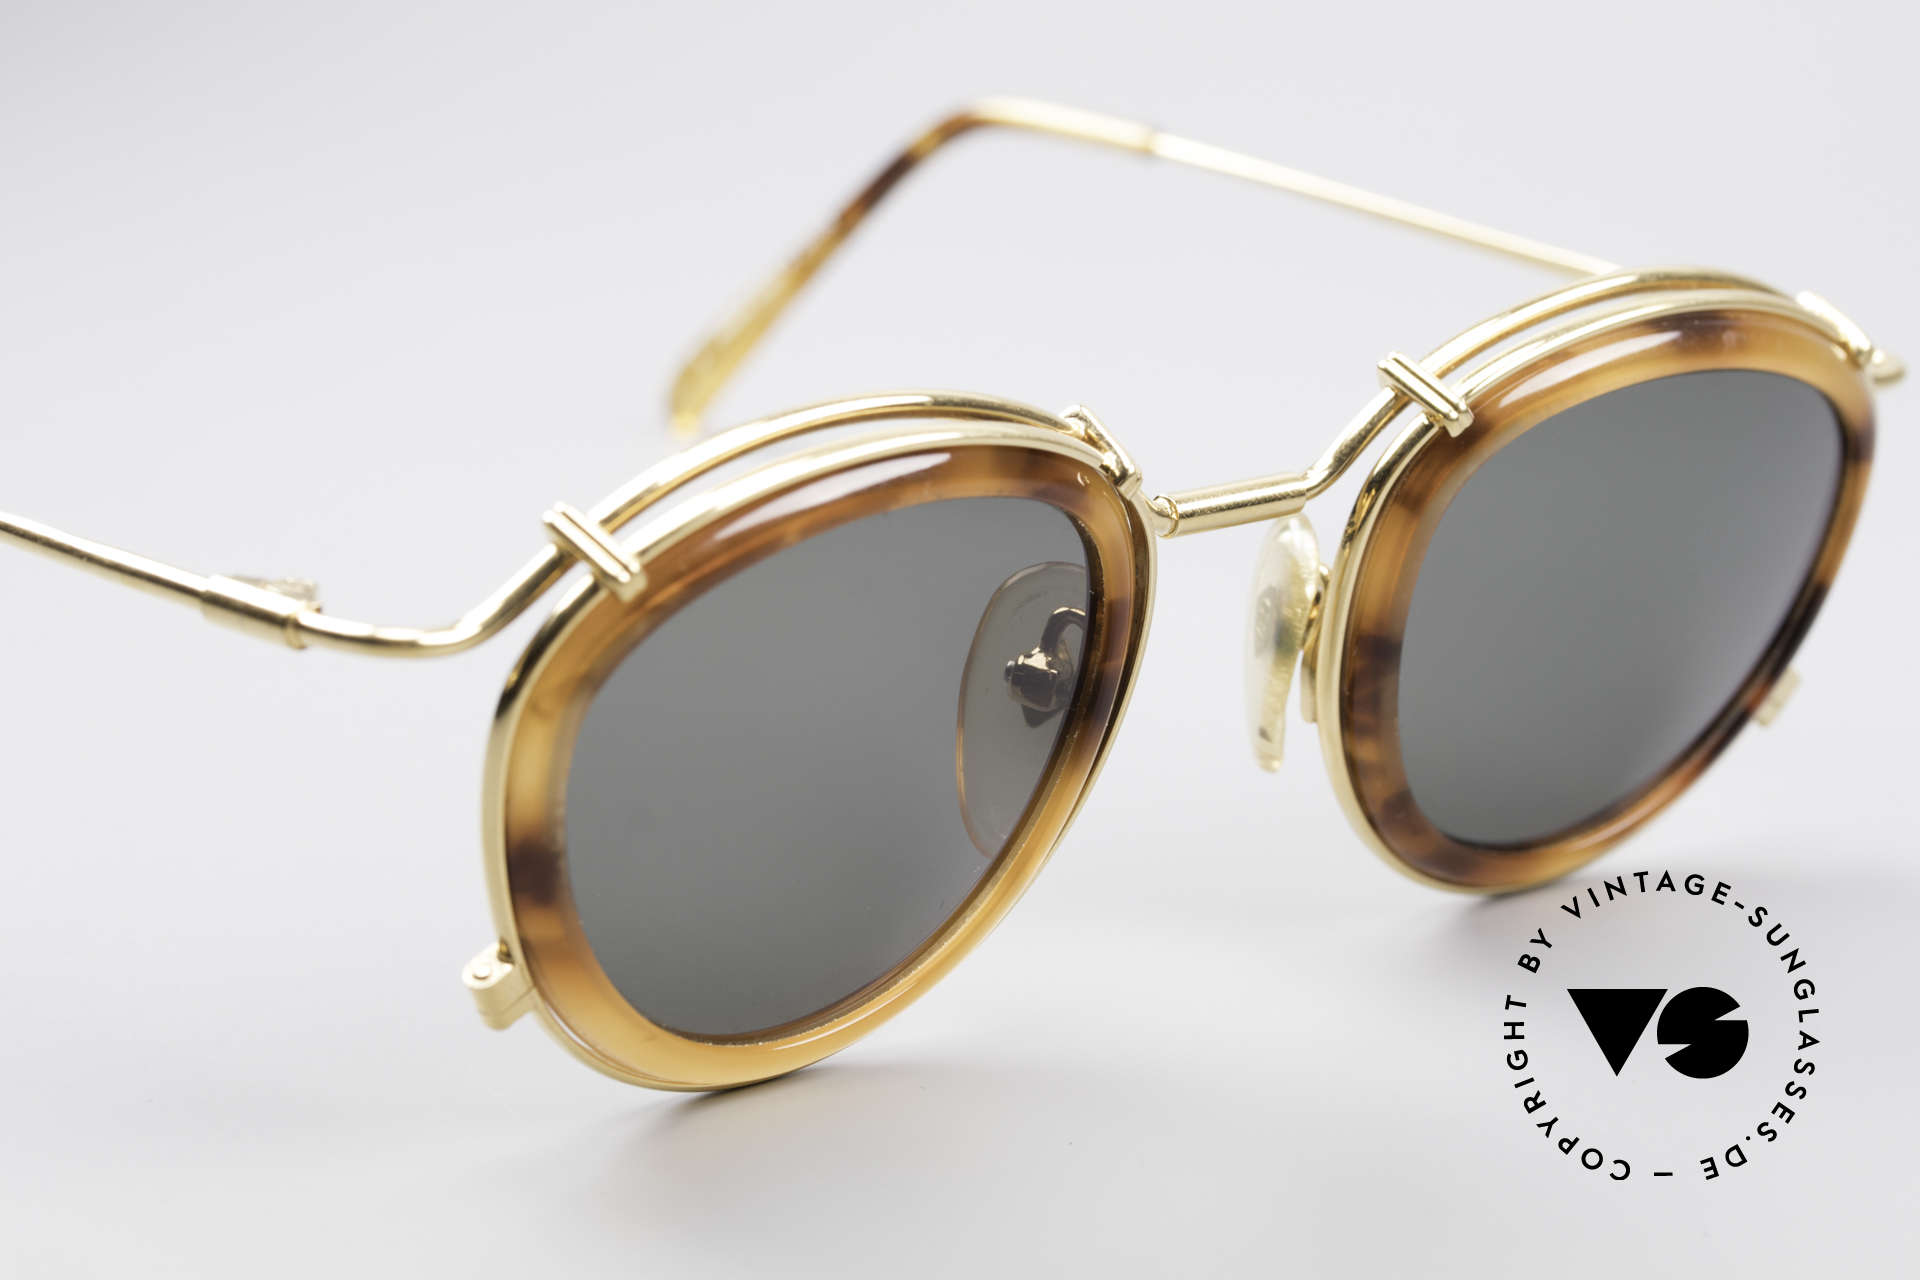 Jean Paul Gaultier 56-2271 Steampunk Designer Shades, new old stock (like all our vintage JP Gaultier shades), Made for Men and Women